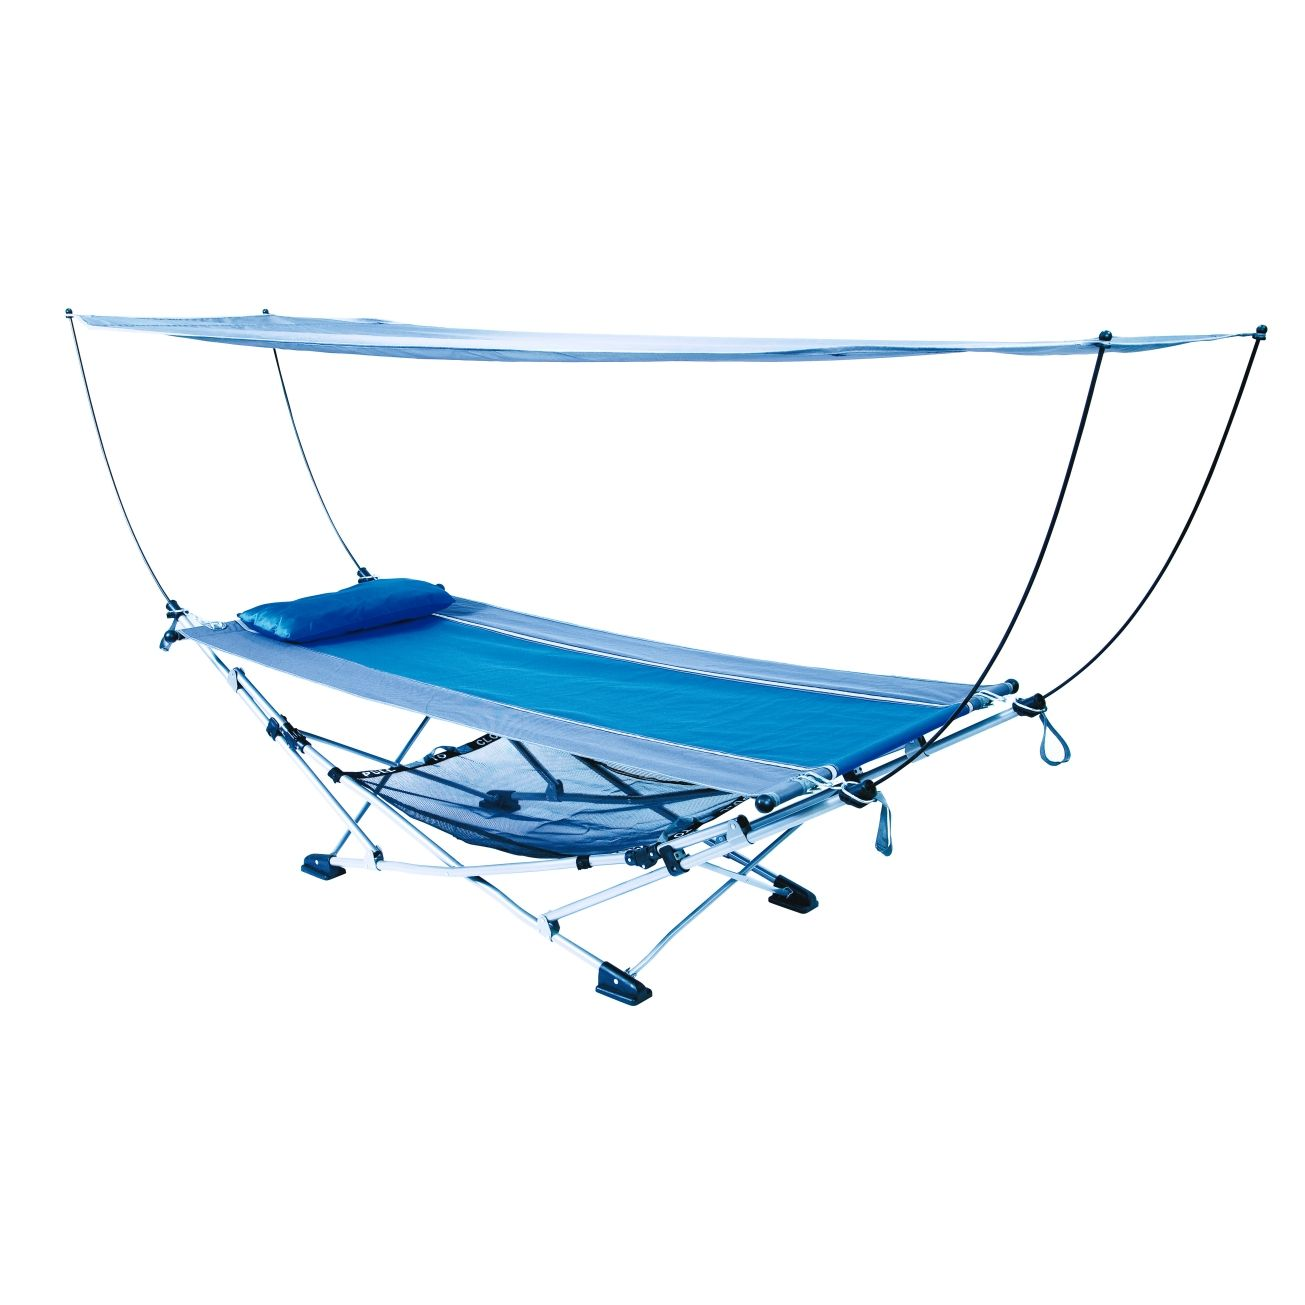 Mac Sports Portable Hammock W Removable Canopy H805s